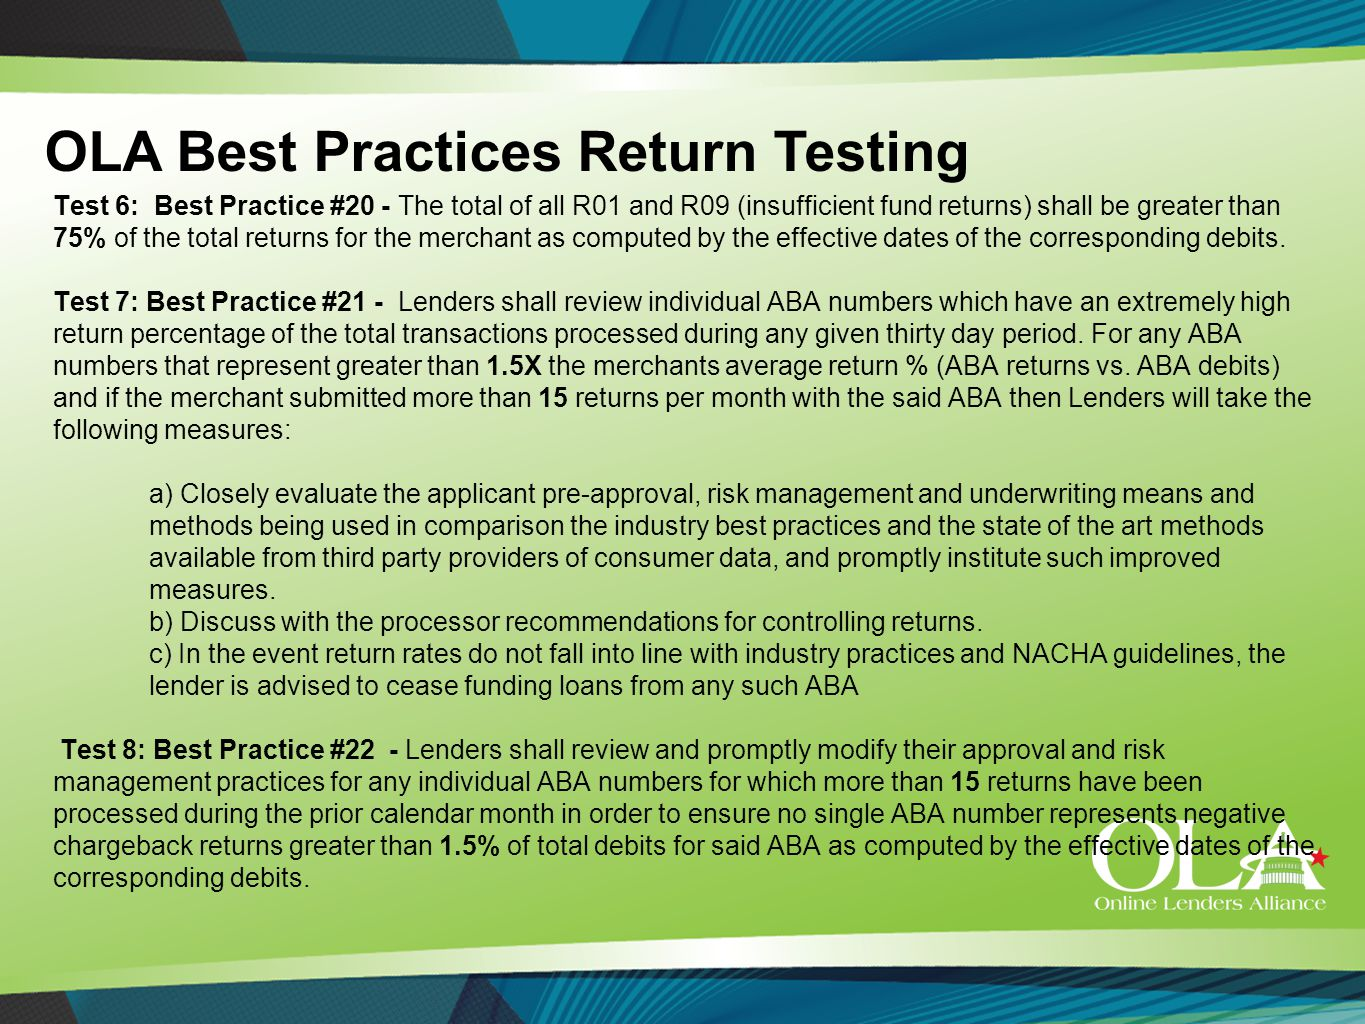 Test 6: Best Practice #20 - The total of all R01 and R09 (insufficient fund returns) shall be greater than 75% of the total returns for the merchant as computed by the effective dates of the corresponding debits.